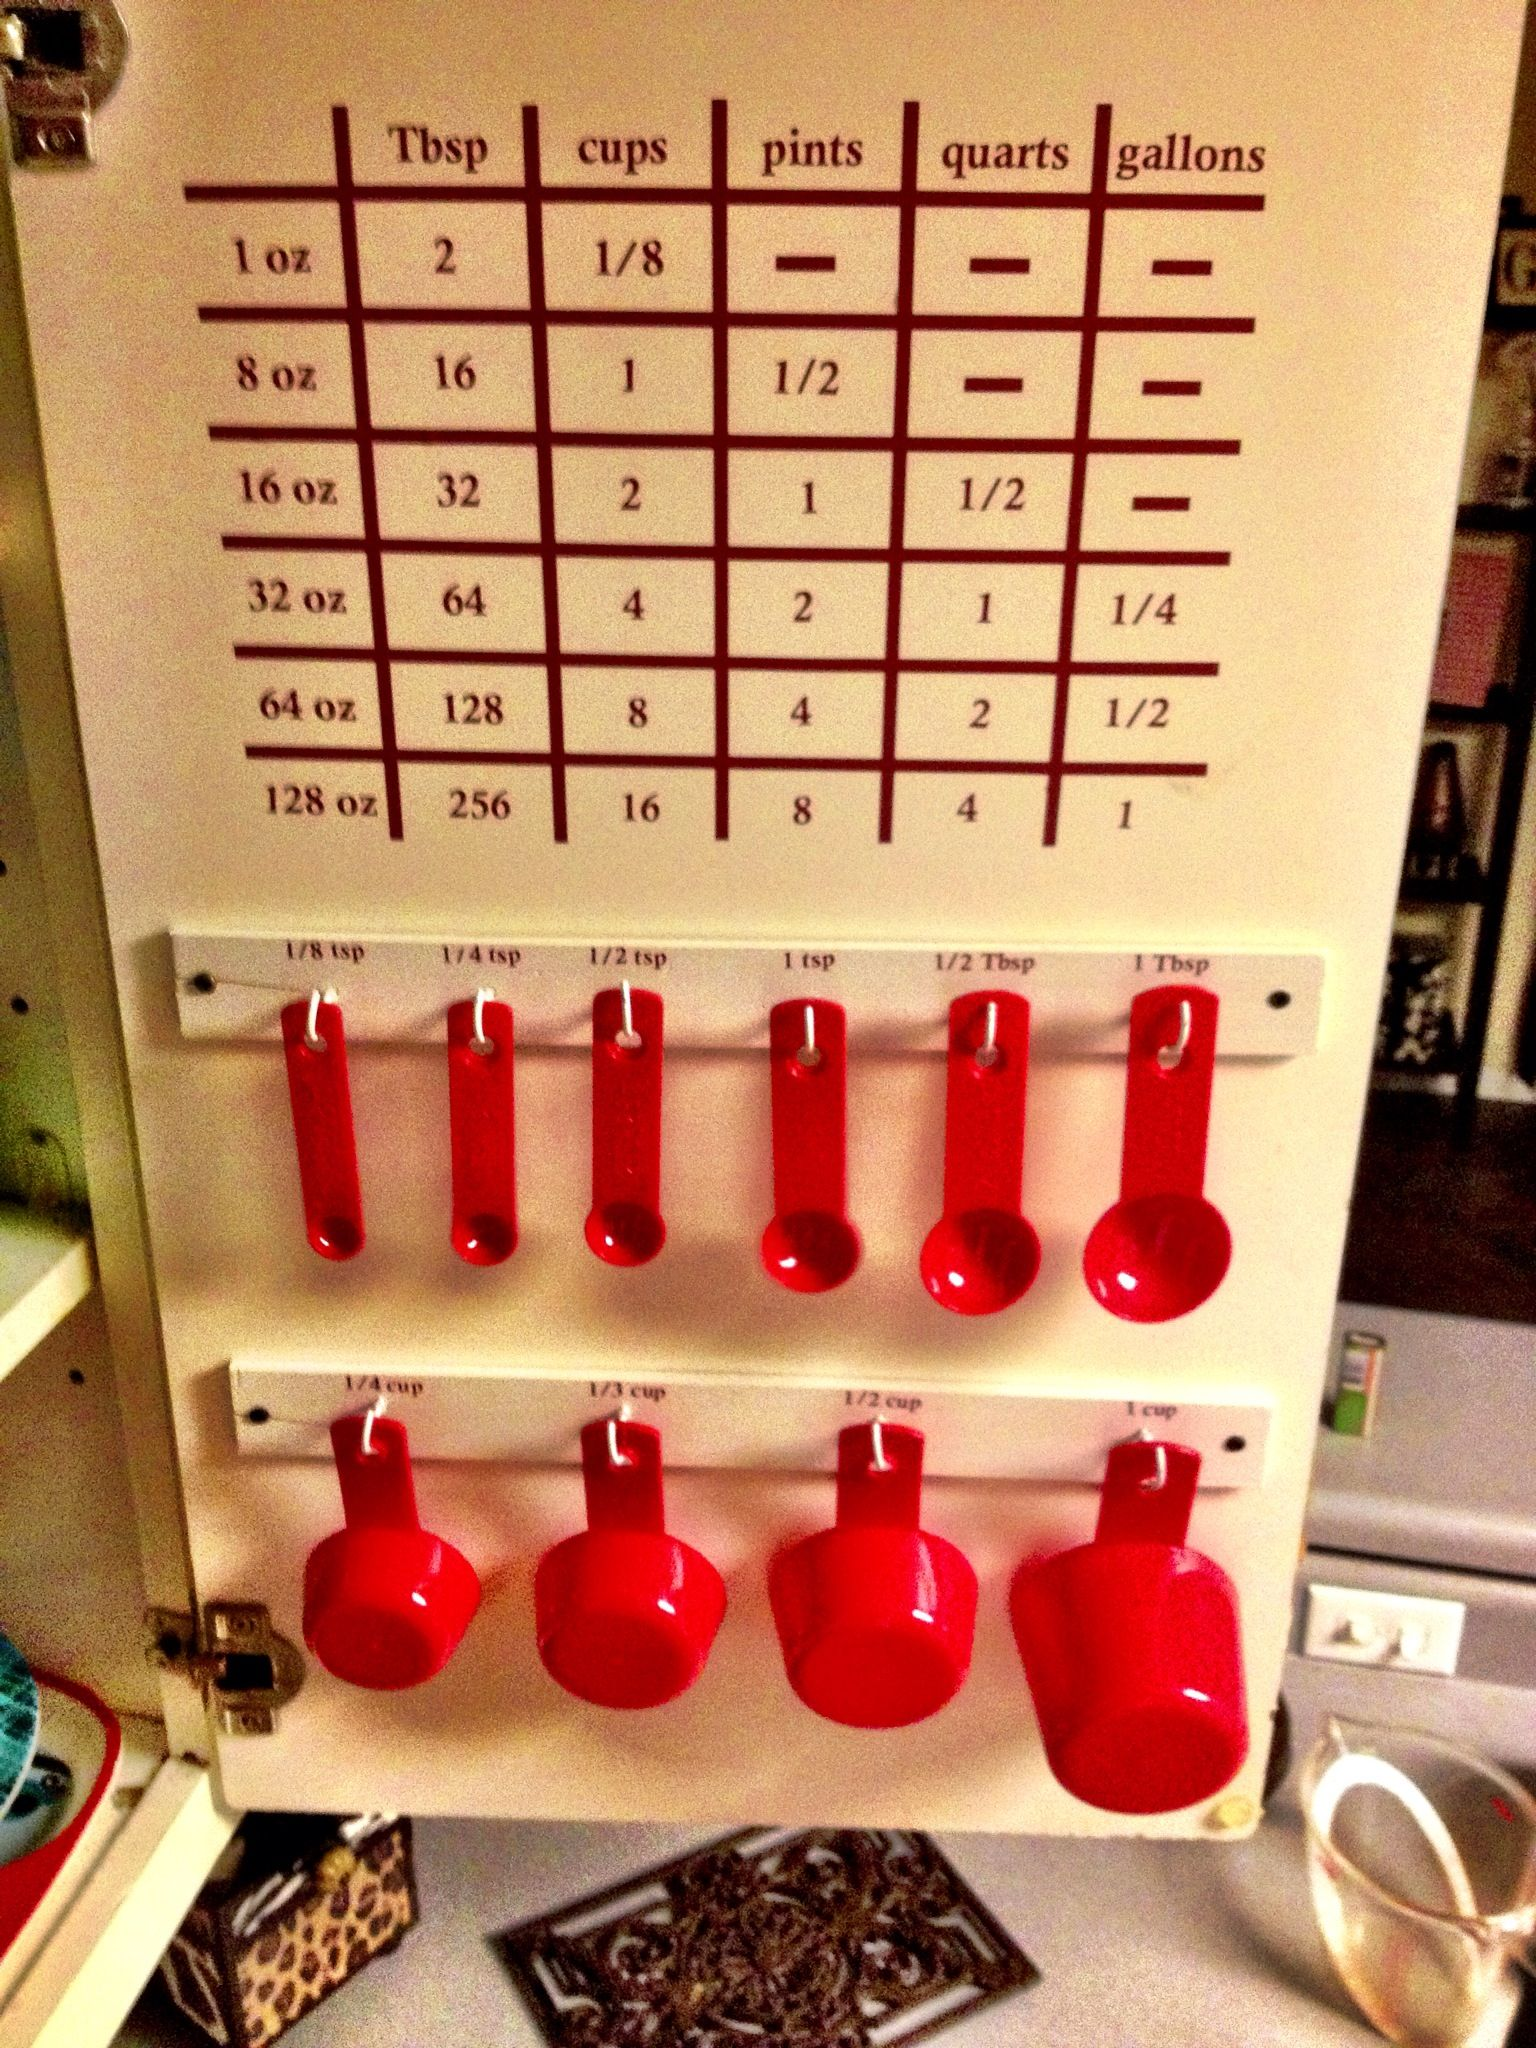 Measuring Spoon And Conversion Chart Complete